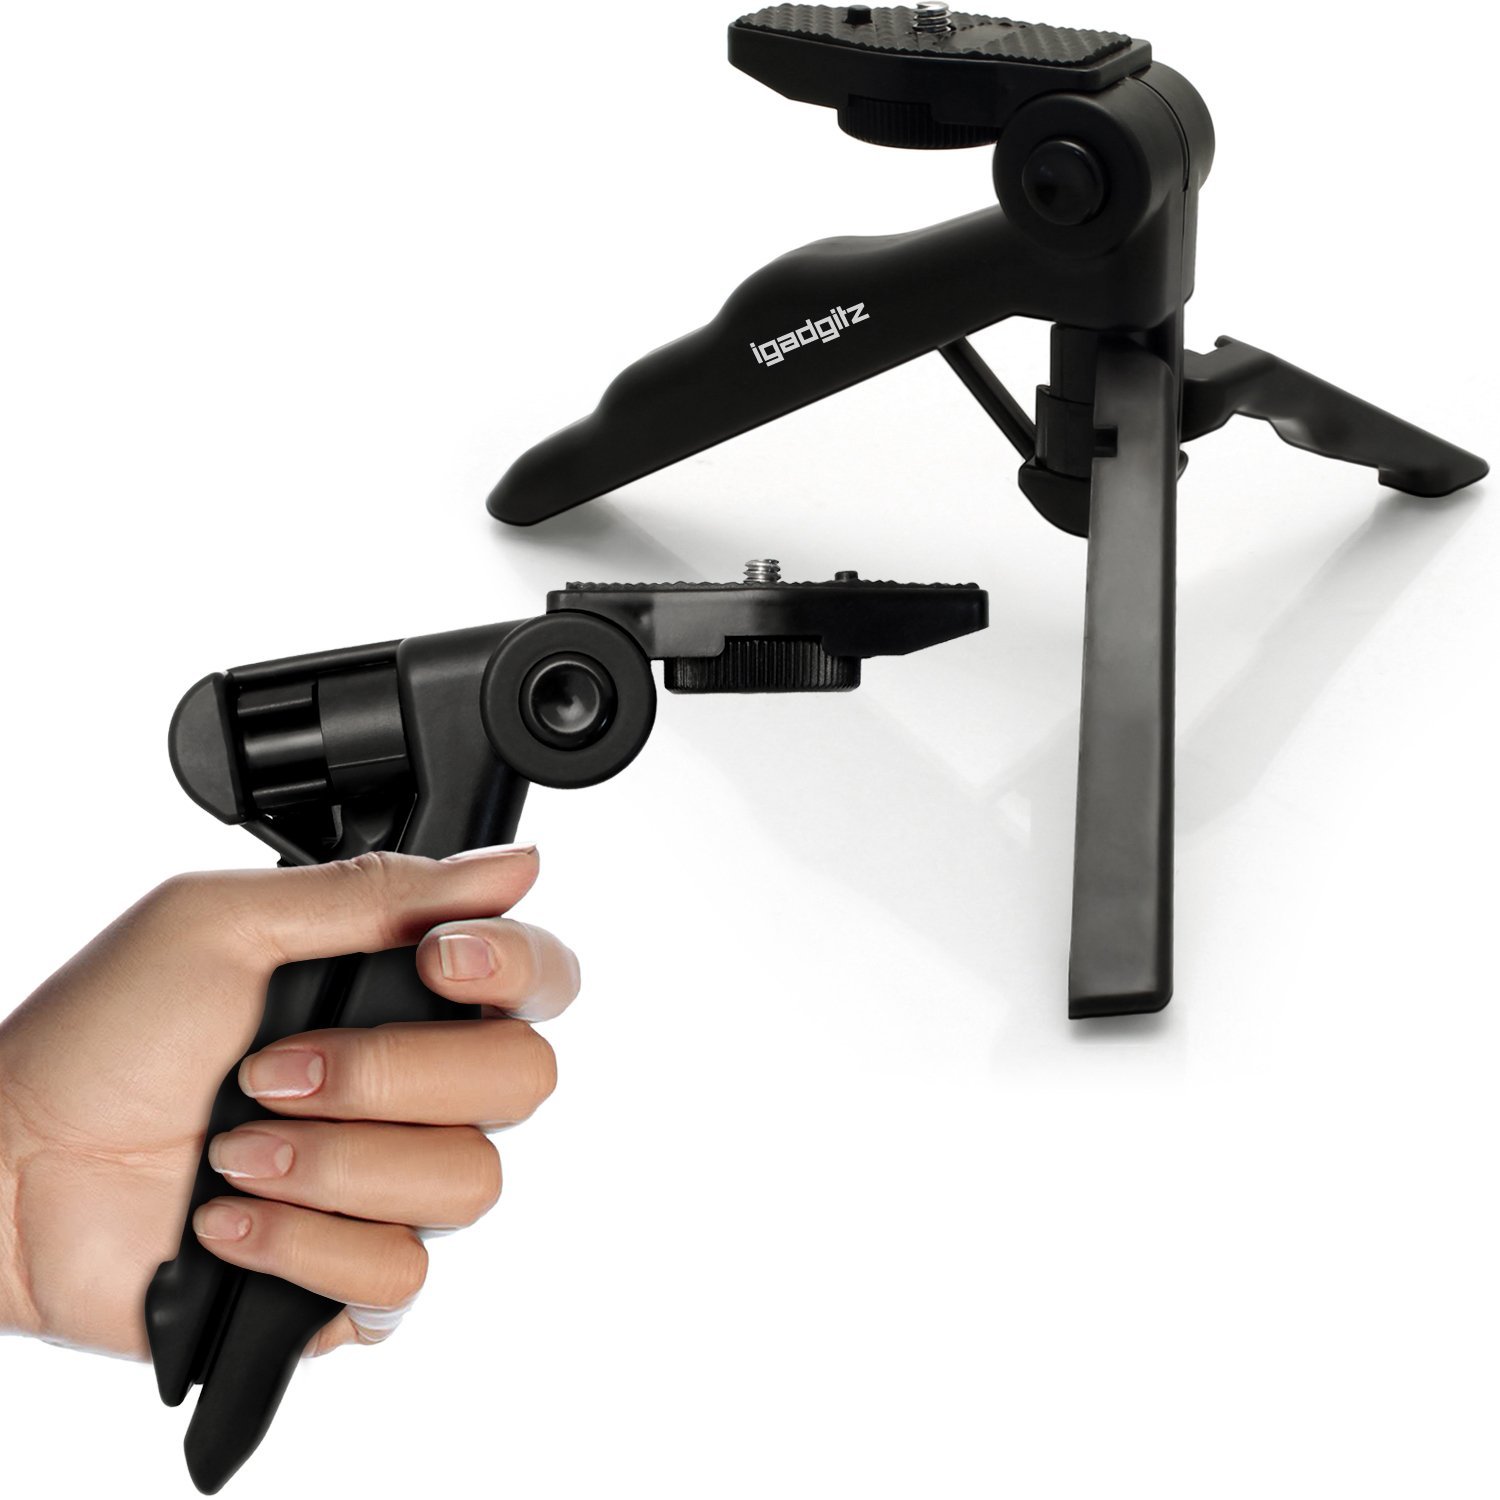 iGadgitz 2 in 1 Pistol Grip Stabilizer and Mini Lightweight Table Top Stand Tripod for Digital Camera, DSLR, Video Camera & Camcorder U4137